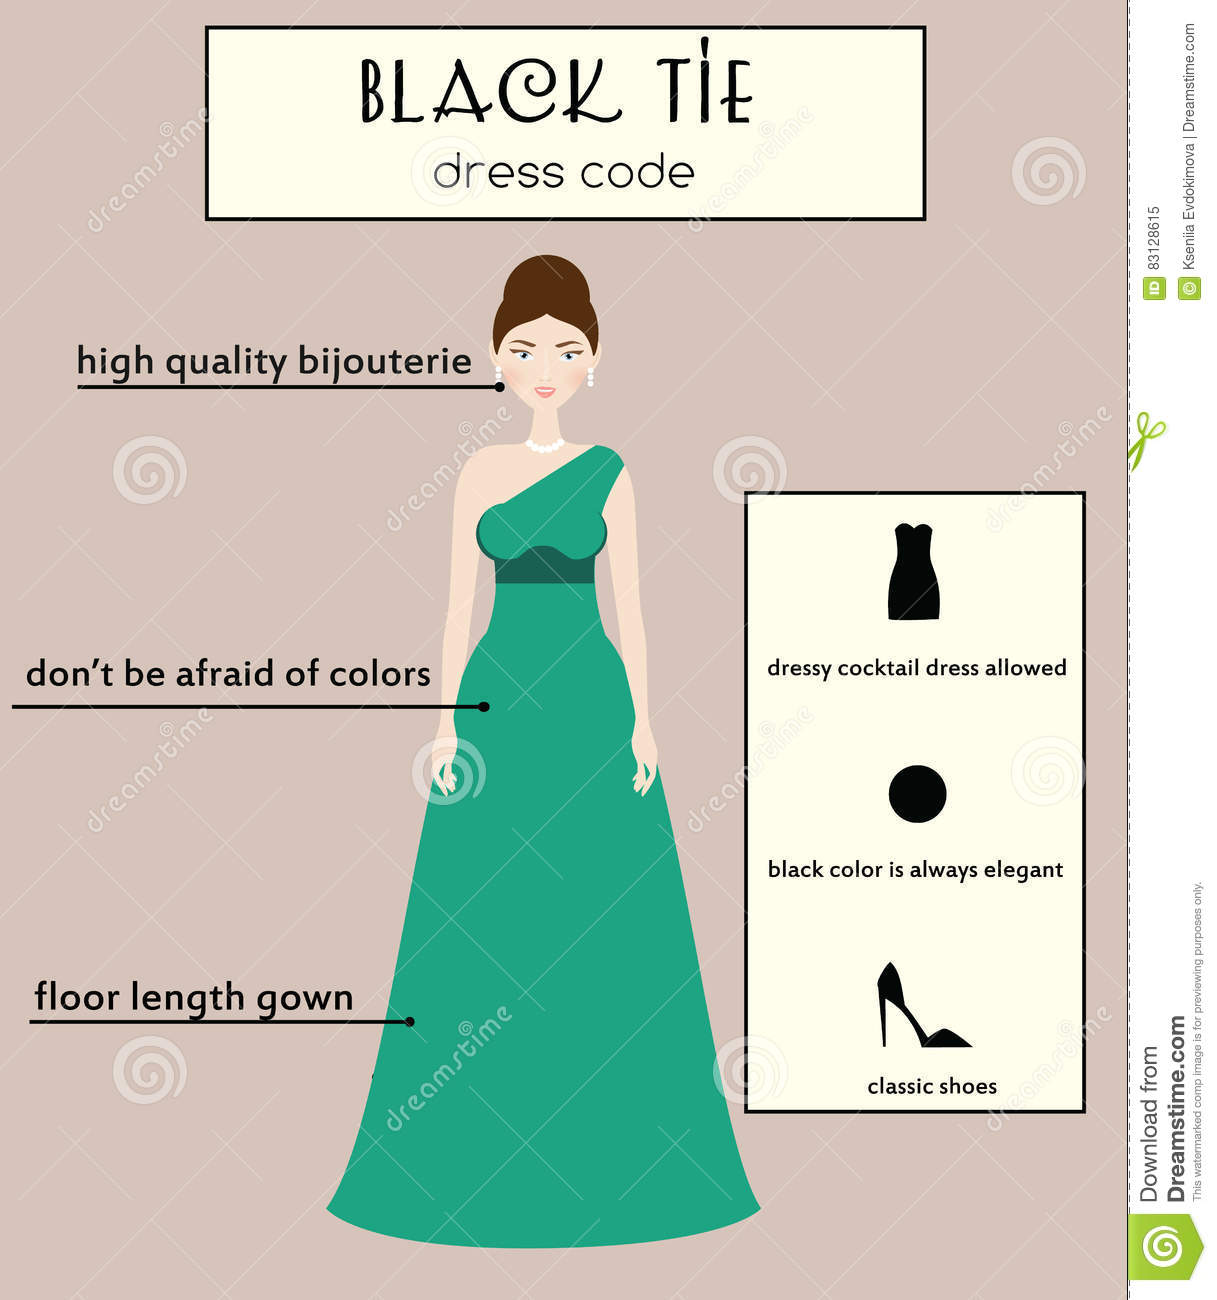 Dress code evening gown - Black Code Dress Evening Female Gown